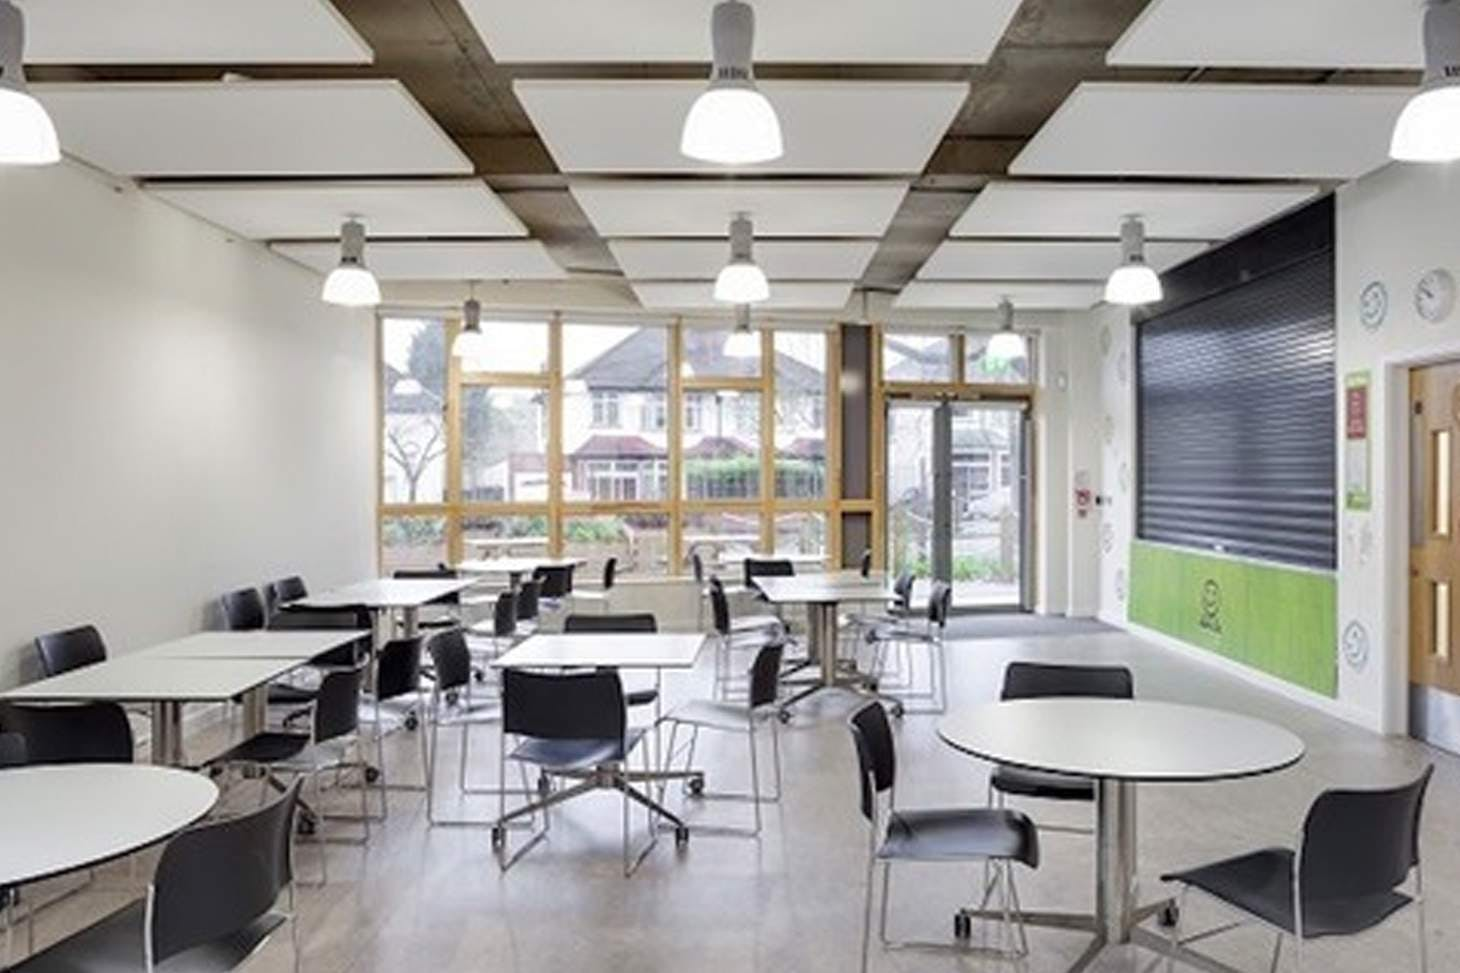 Priory School Croydon Meeting room space hire